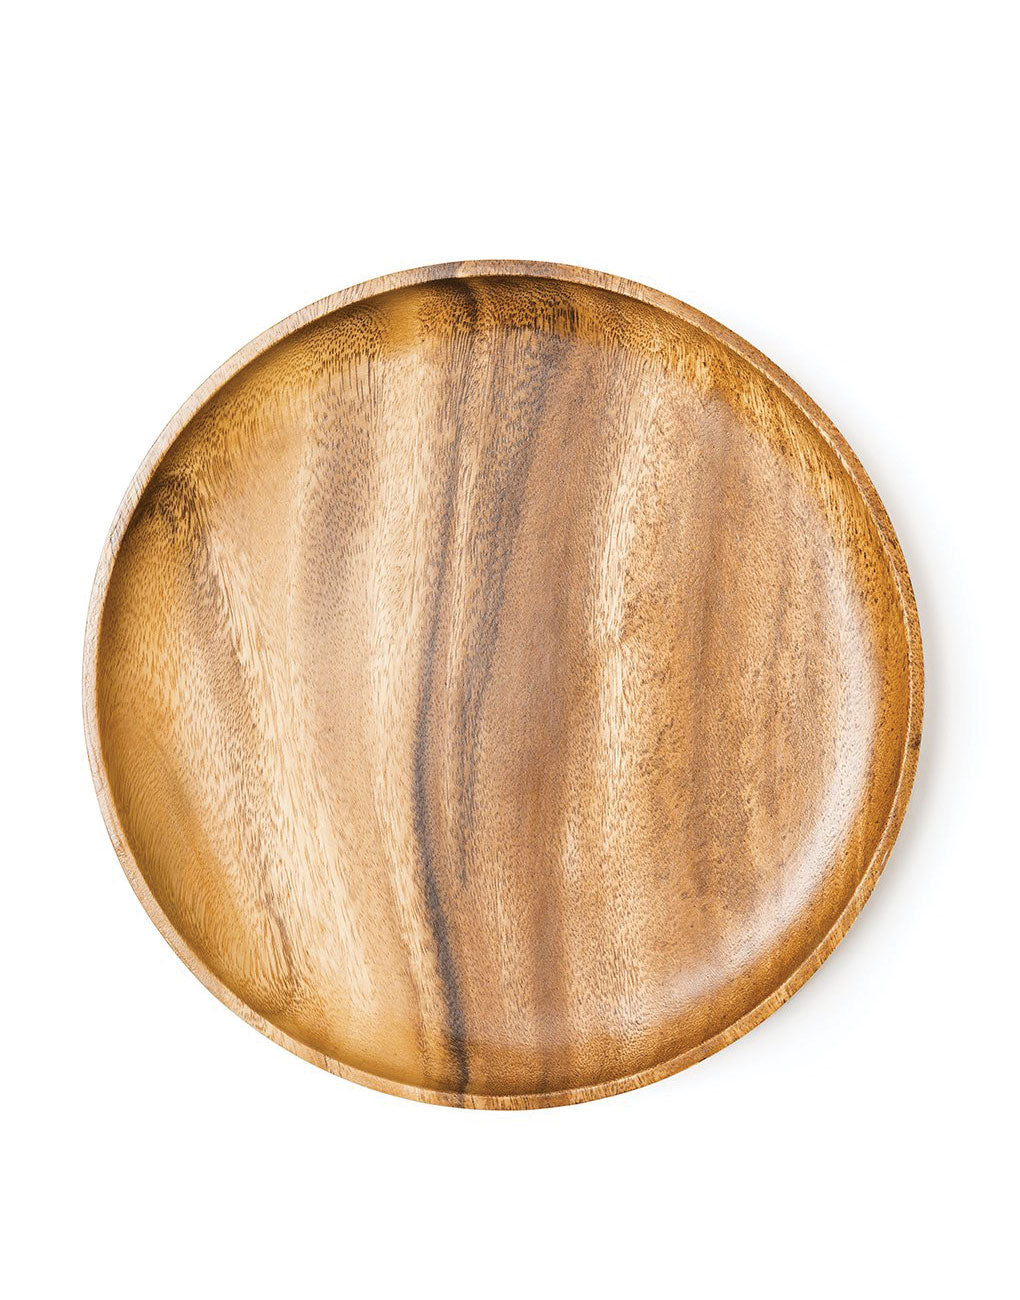 Acacia Wood Oversized Dinner Plate | The Little Market